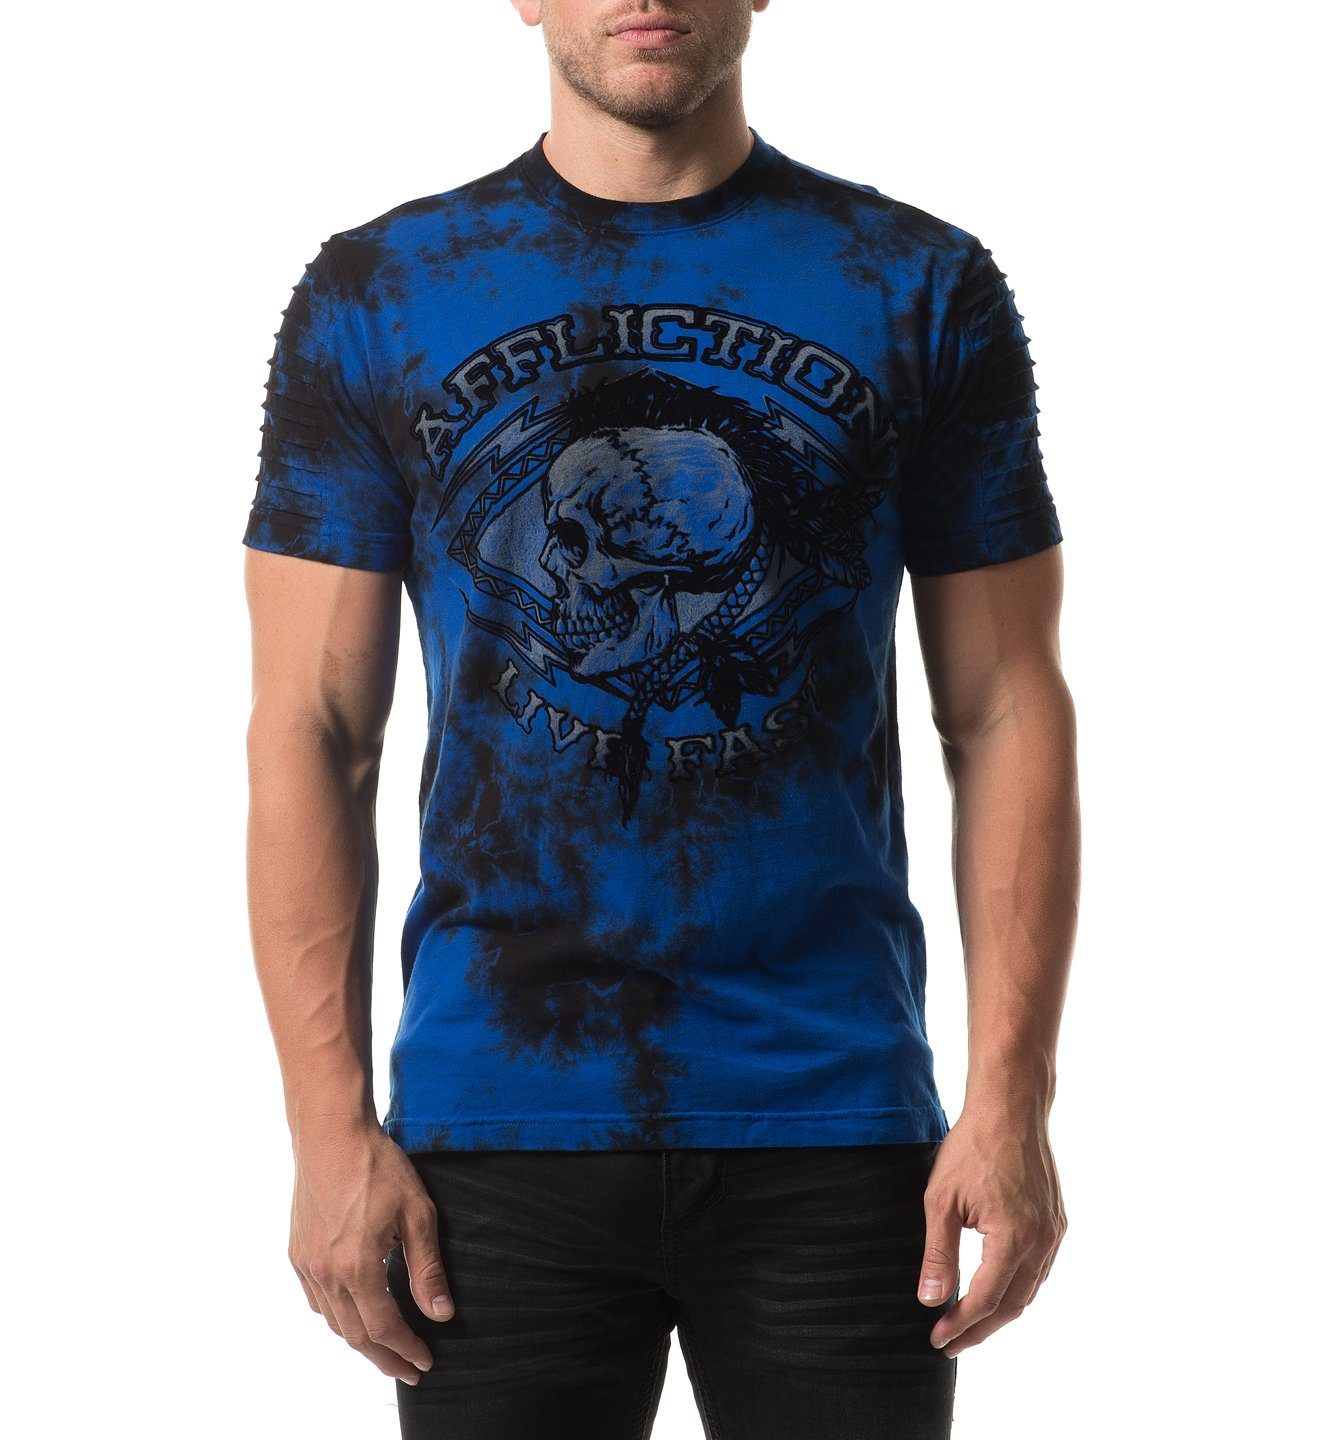 Mens Short Sleeve Tees - Warpath Chalkboard